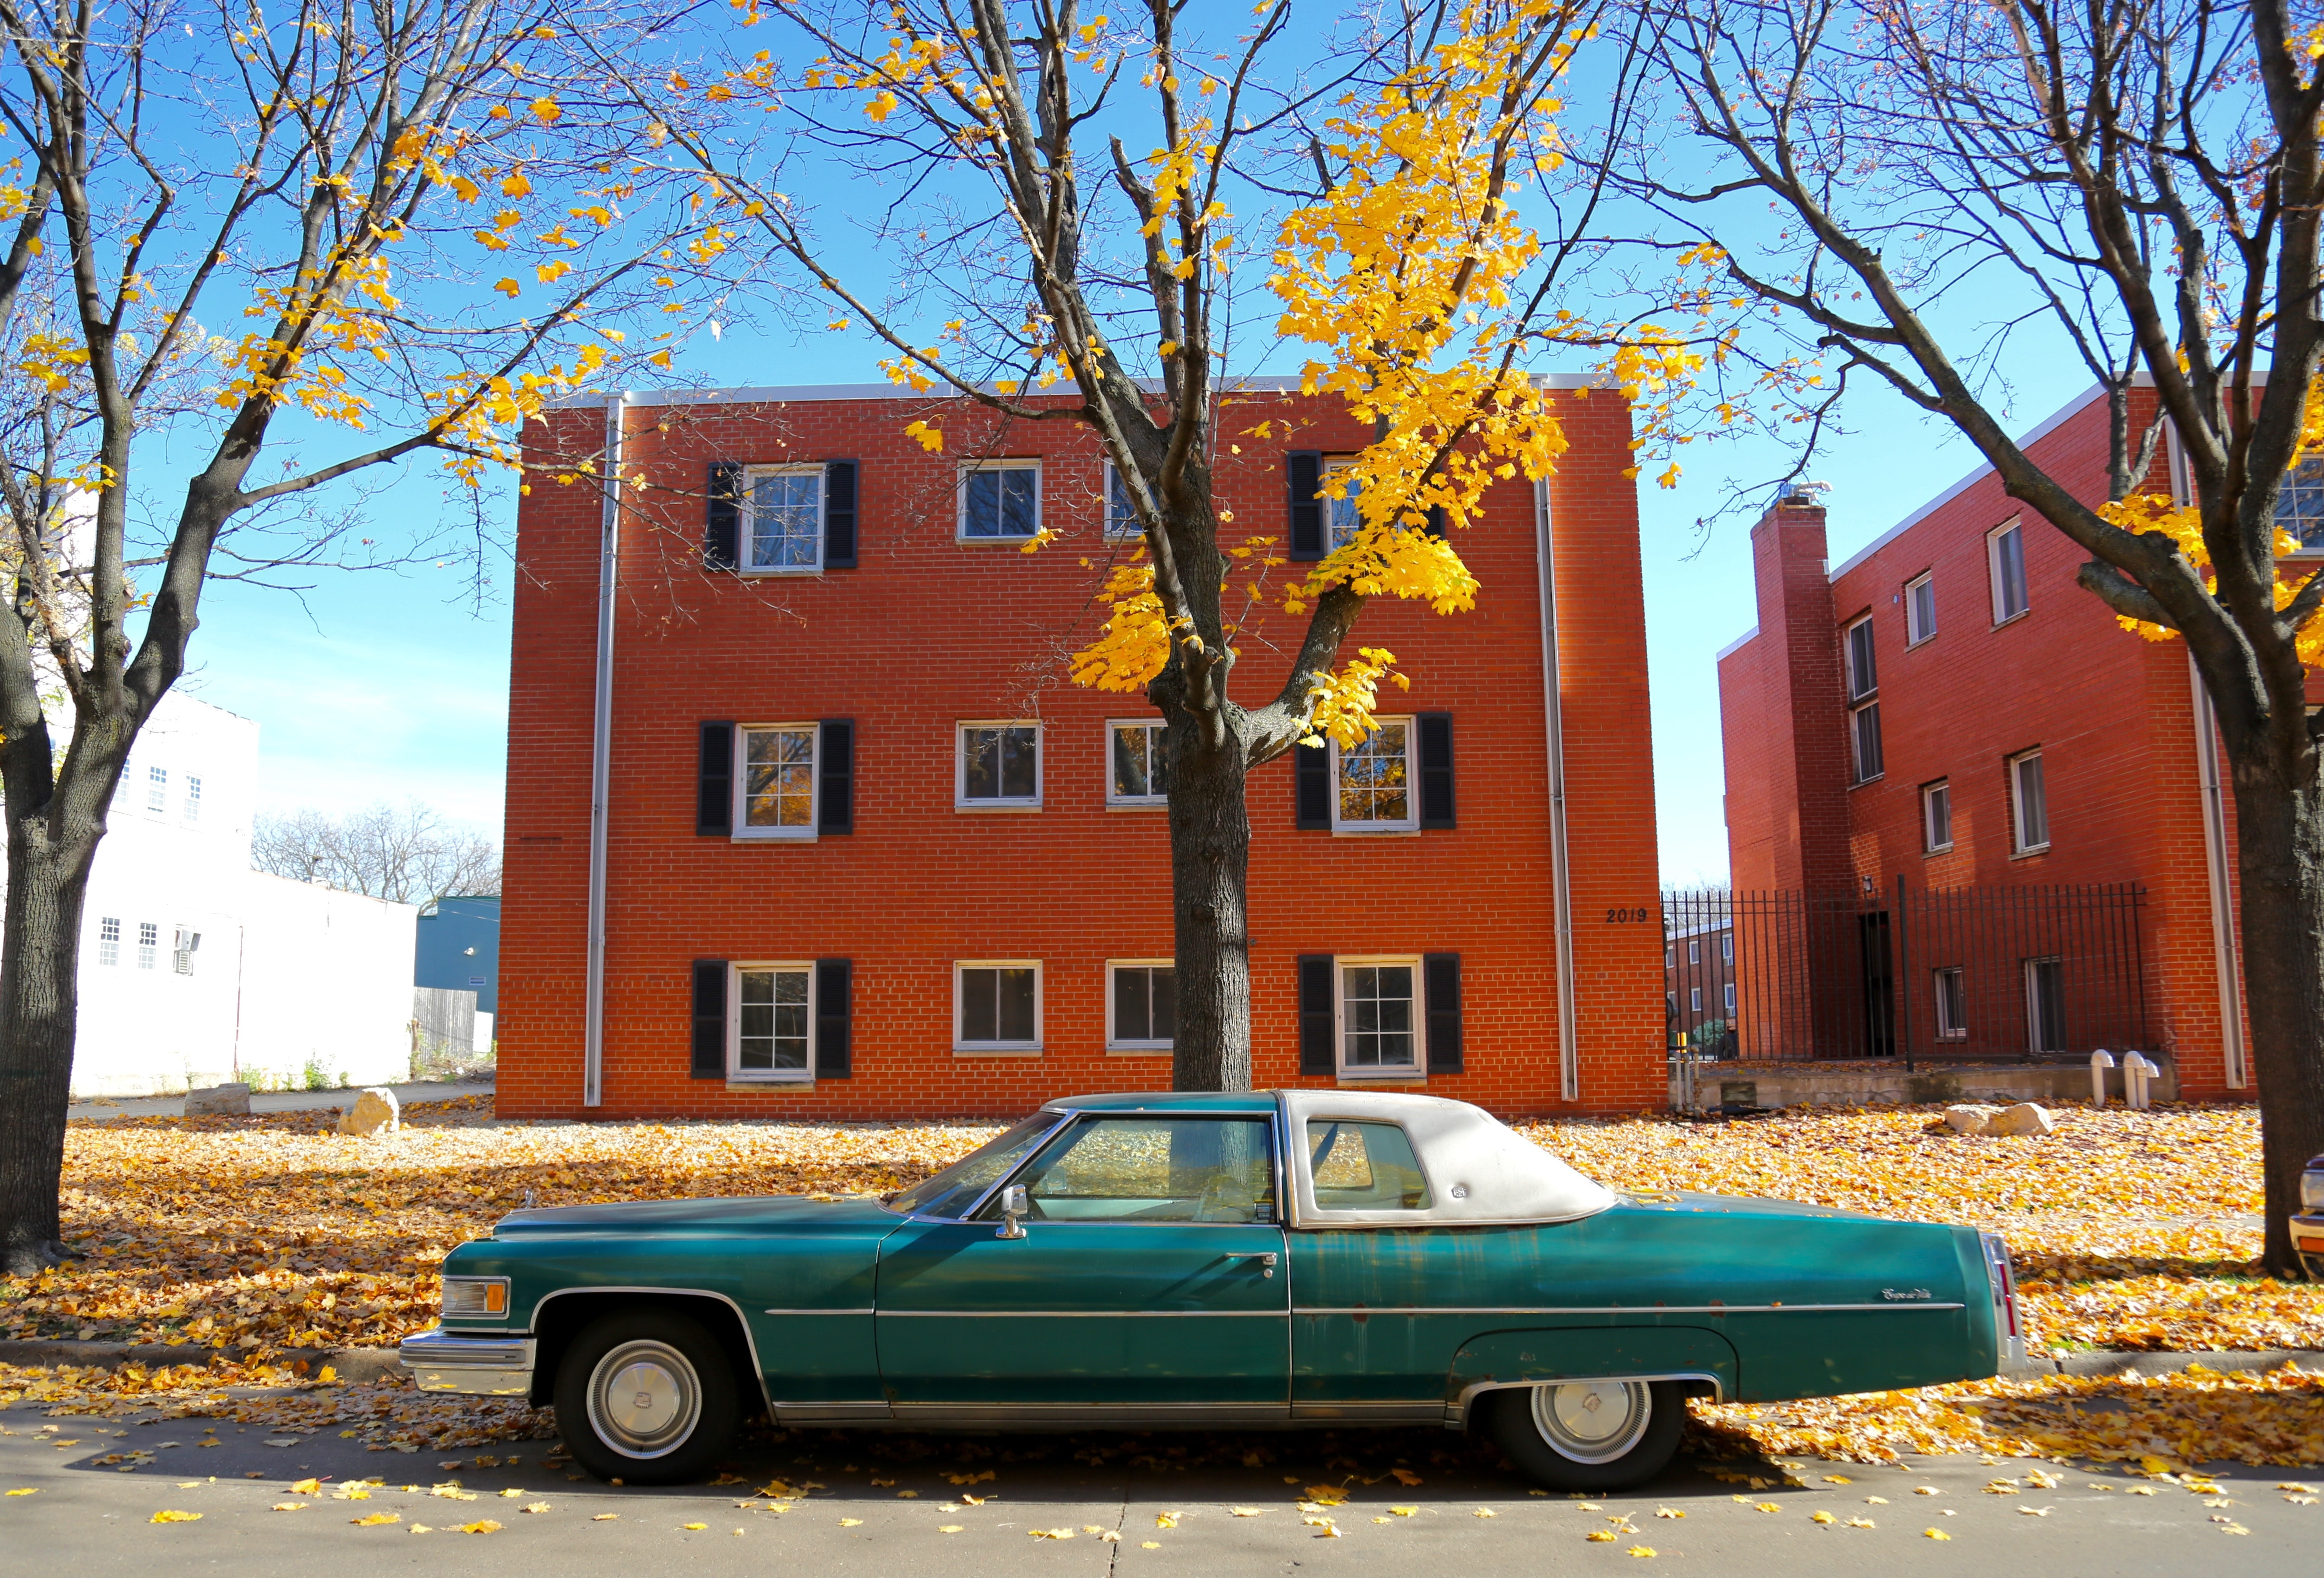 Vintage cyan car parked on a street in front of a brick building in autumn